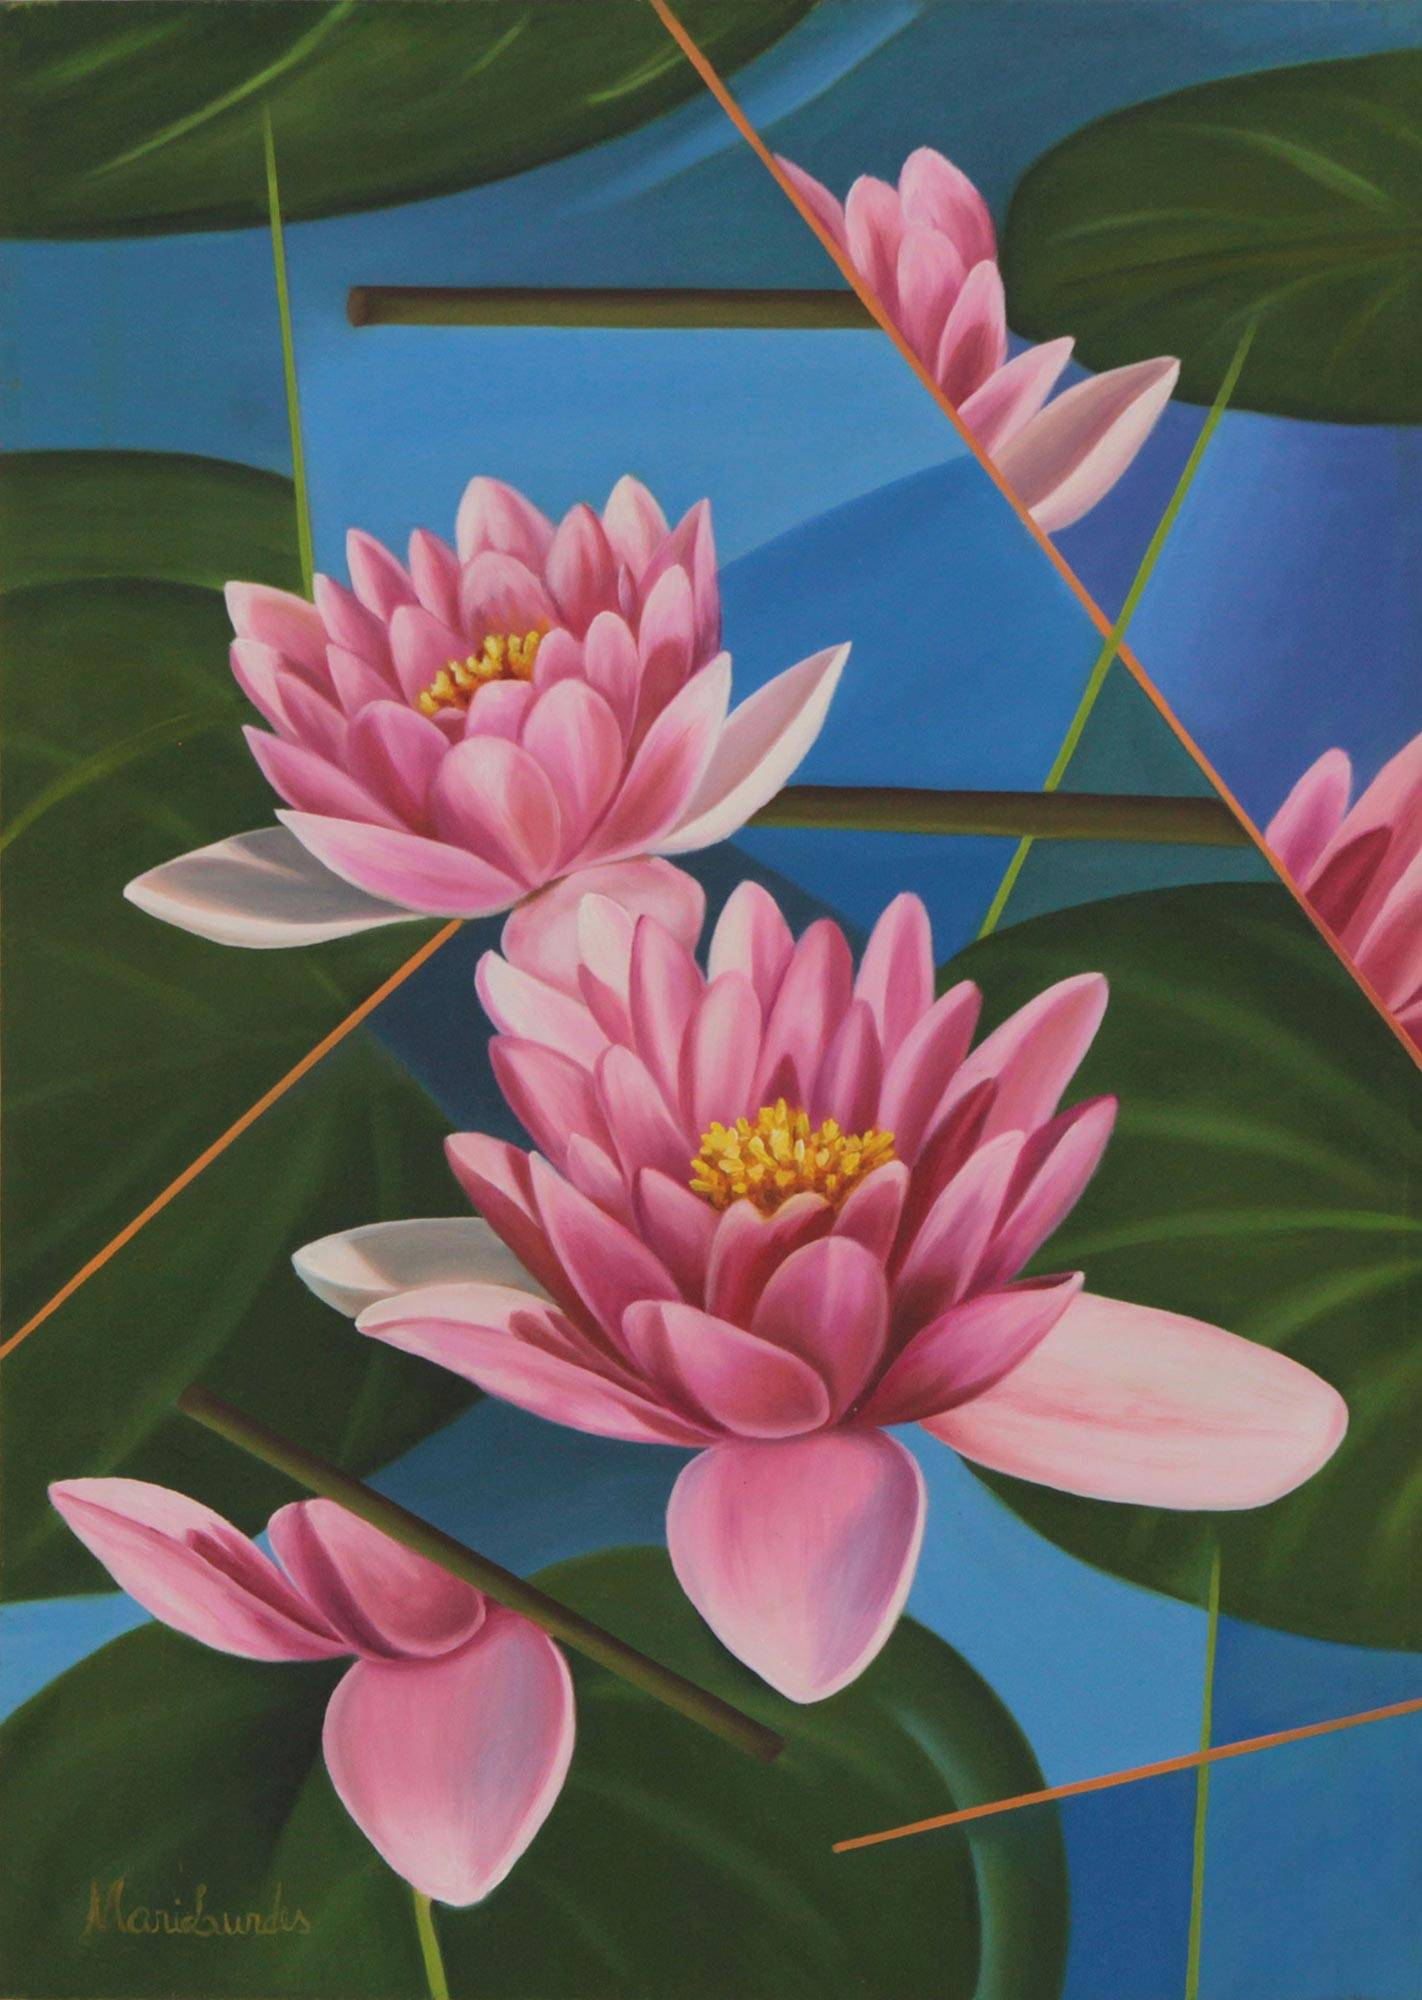 Unicef Uk Market Signed Painting Pink Lotus Flowers Brazil Modern